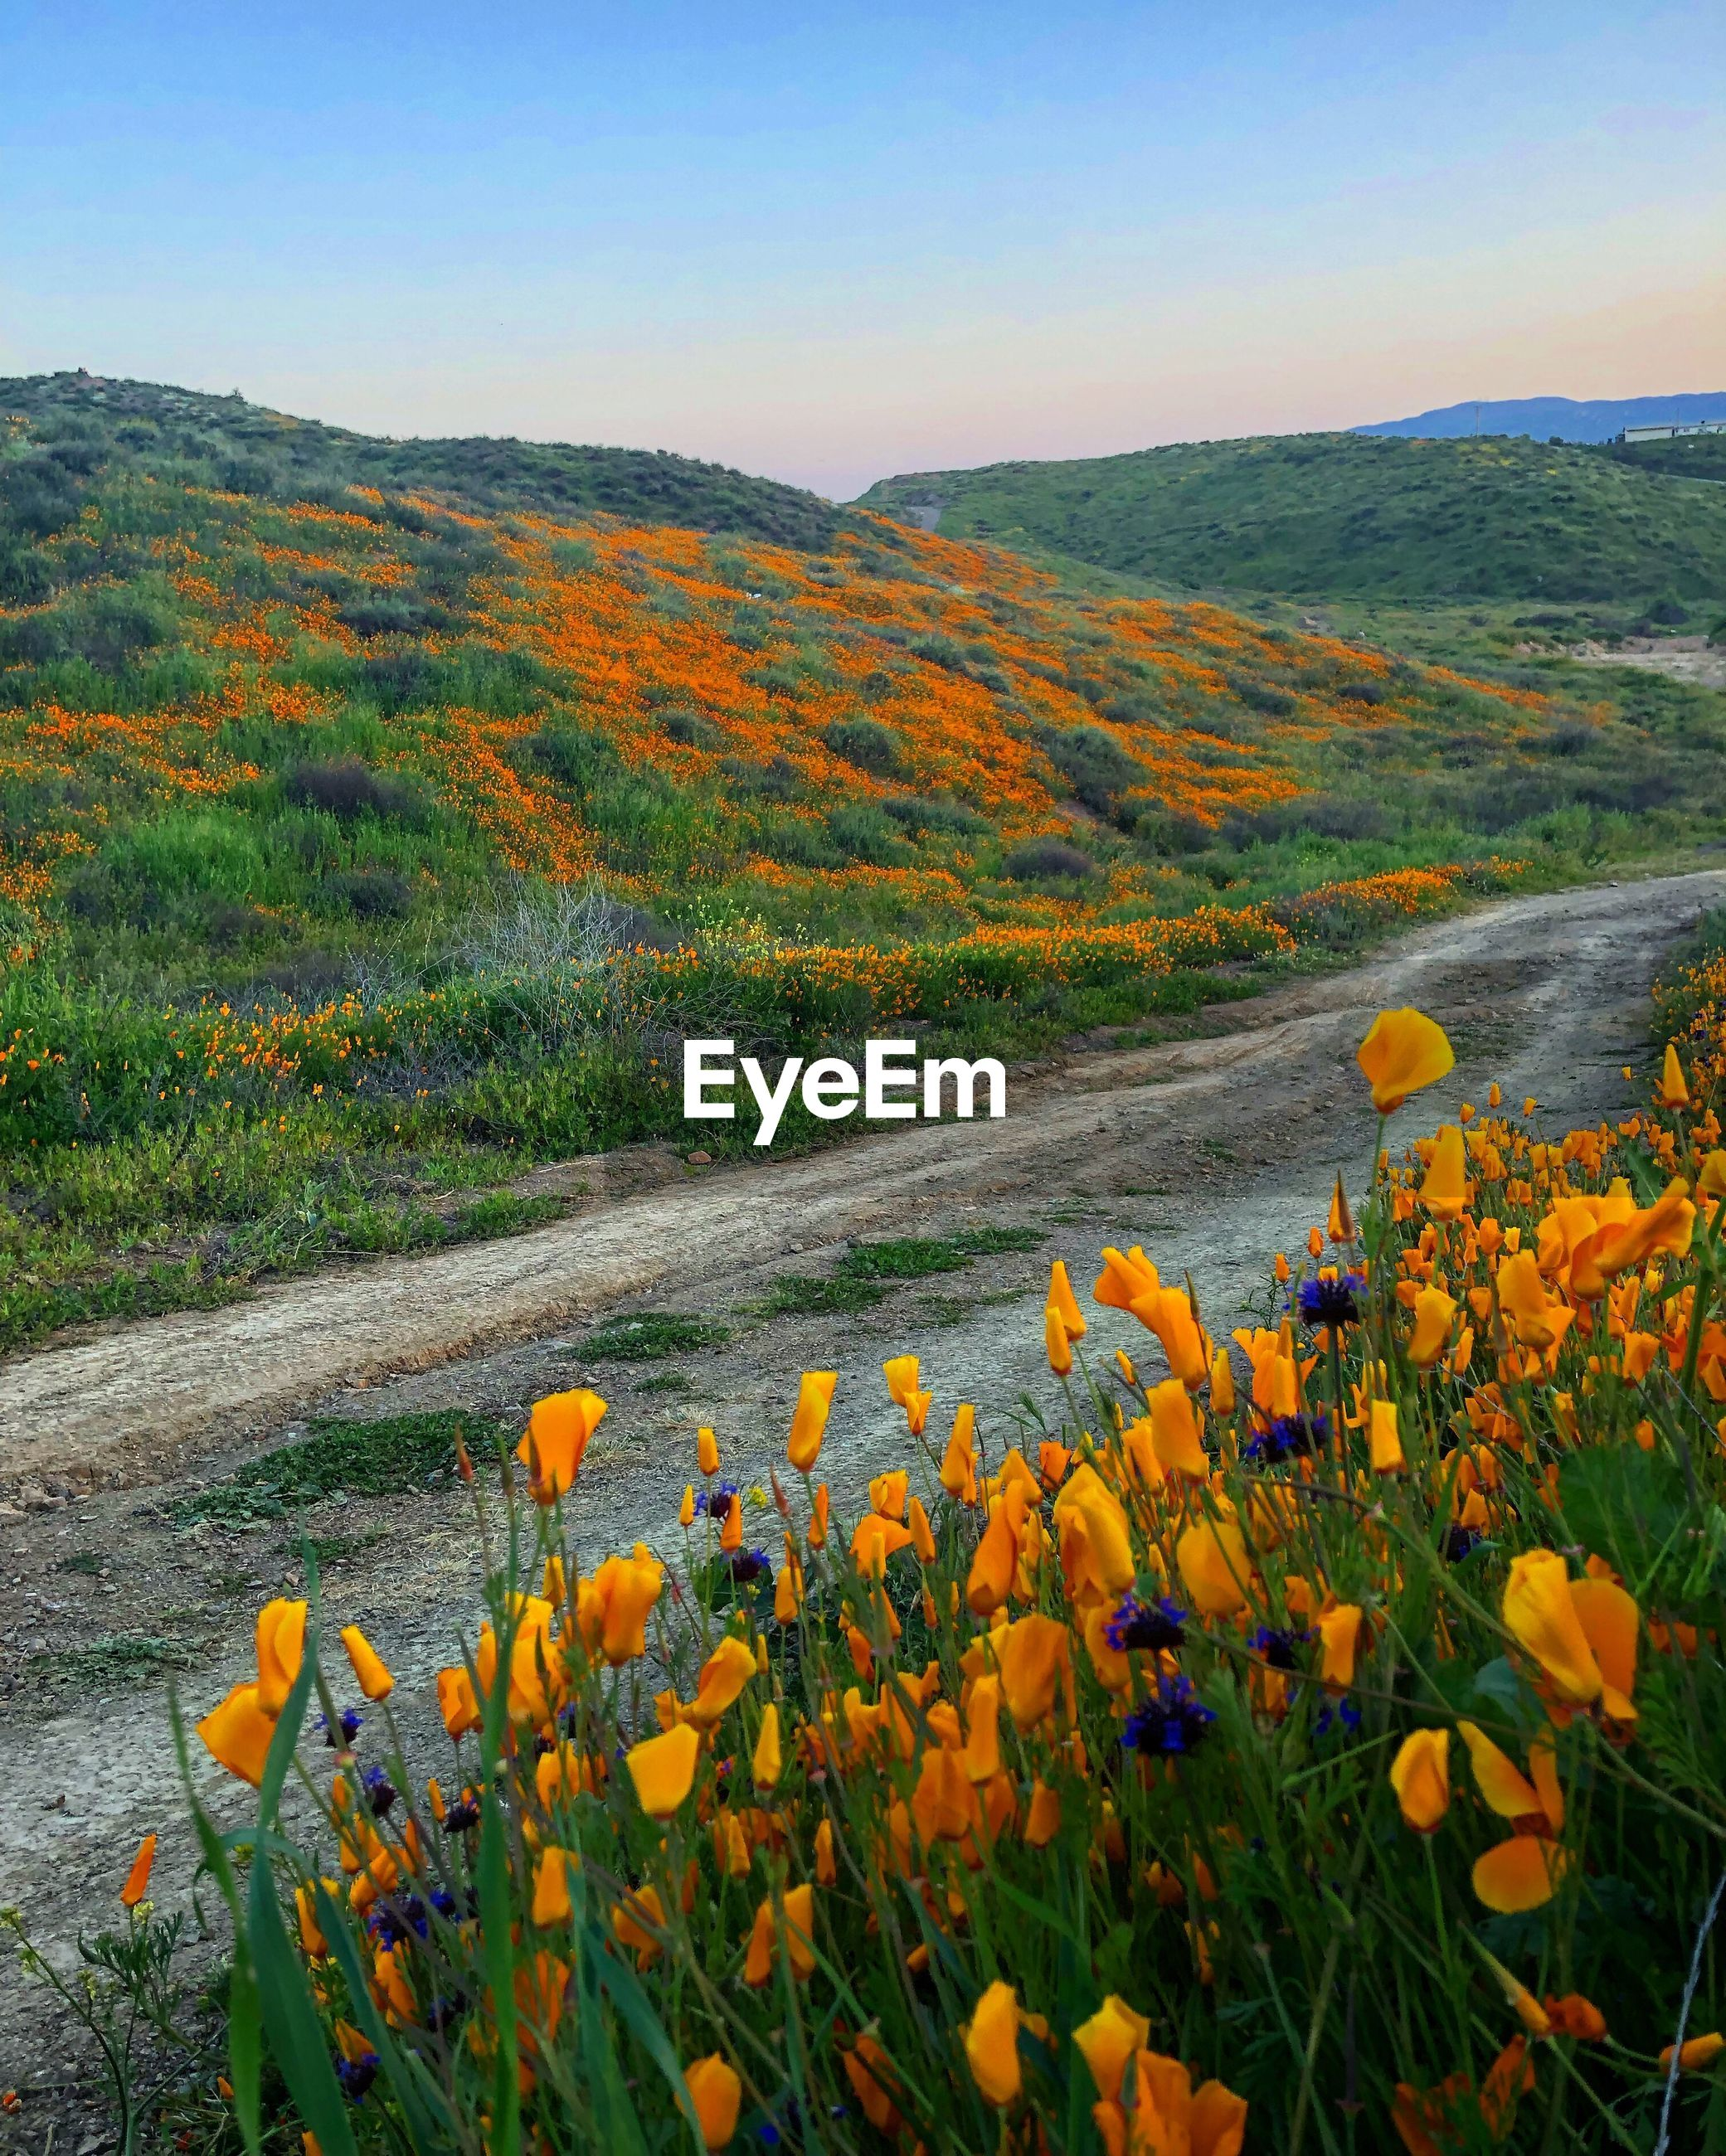 SCENIC VIEW OF FLOWERING PLANTS DURING SUNSET